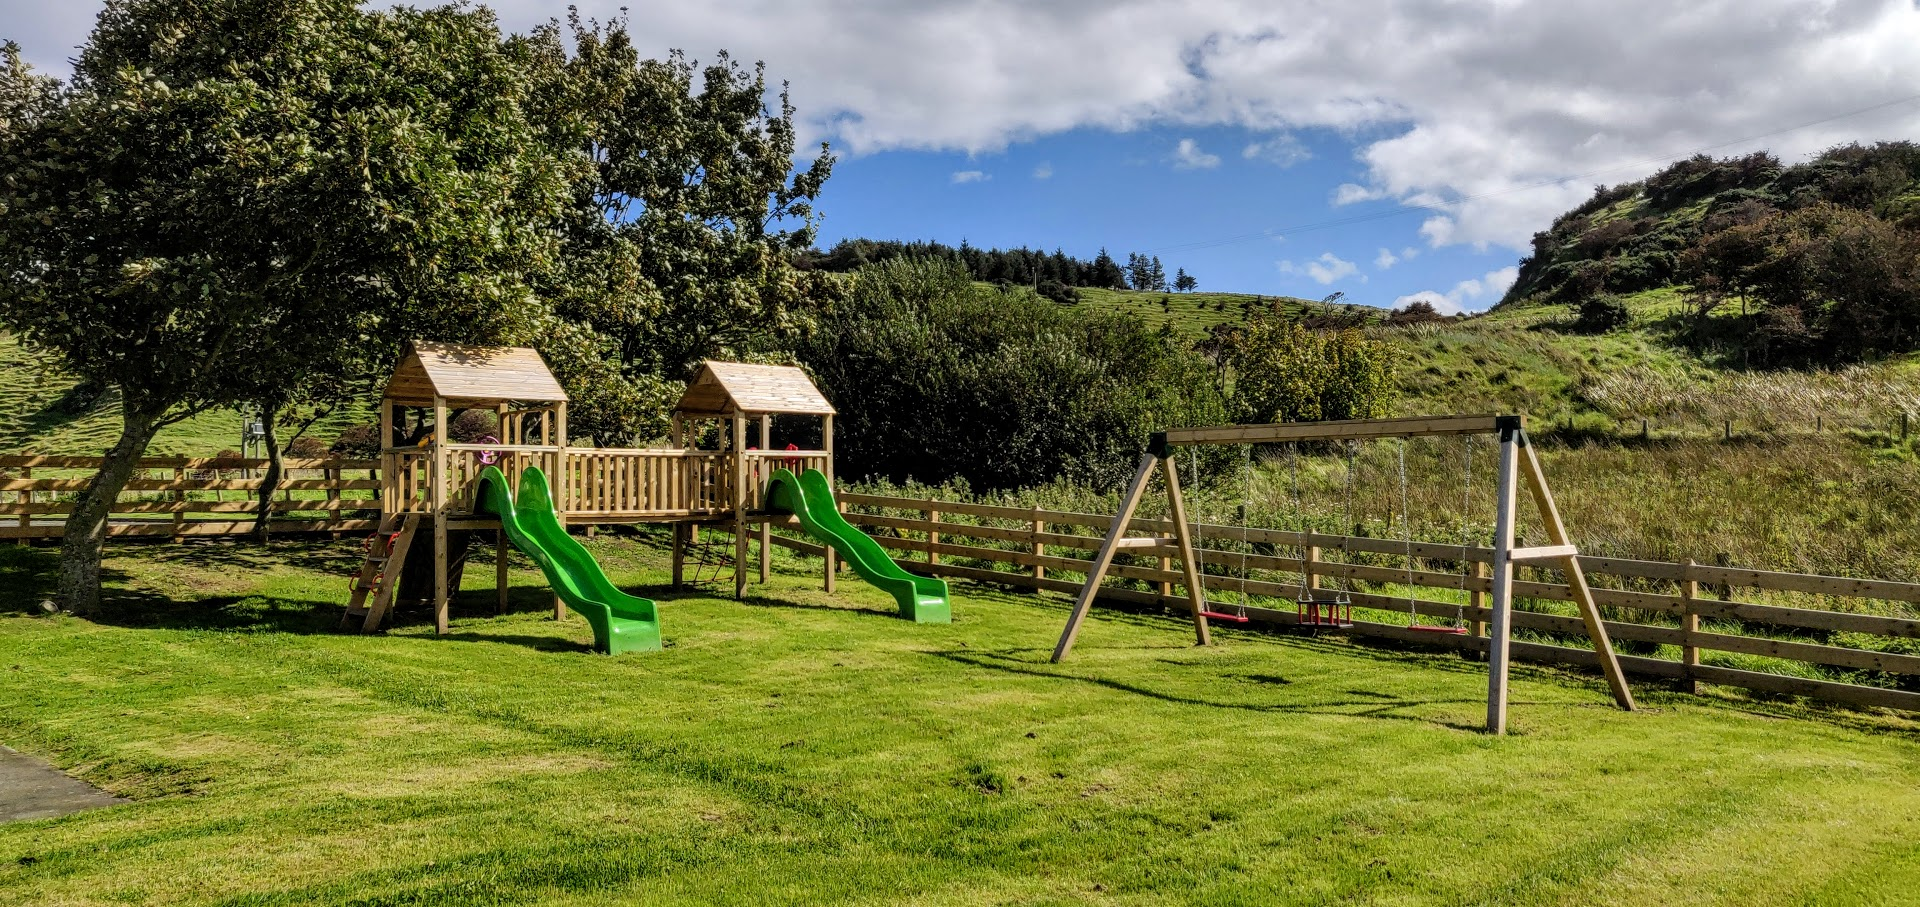 play area at ballygally